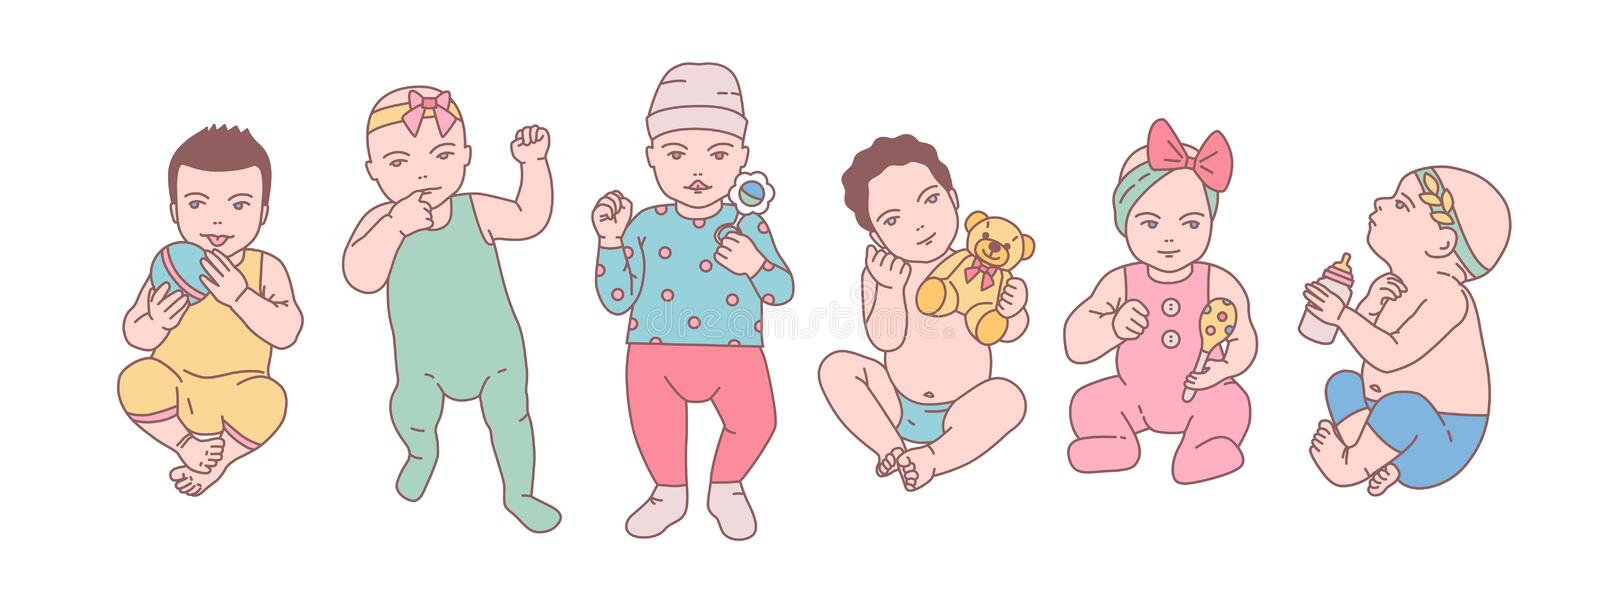 Bundle of cute newborn babies or small children dressed in various clothes and holding toys and rattles. Set of toddlers vector illustration